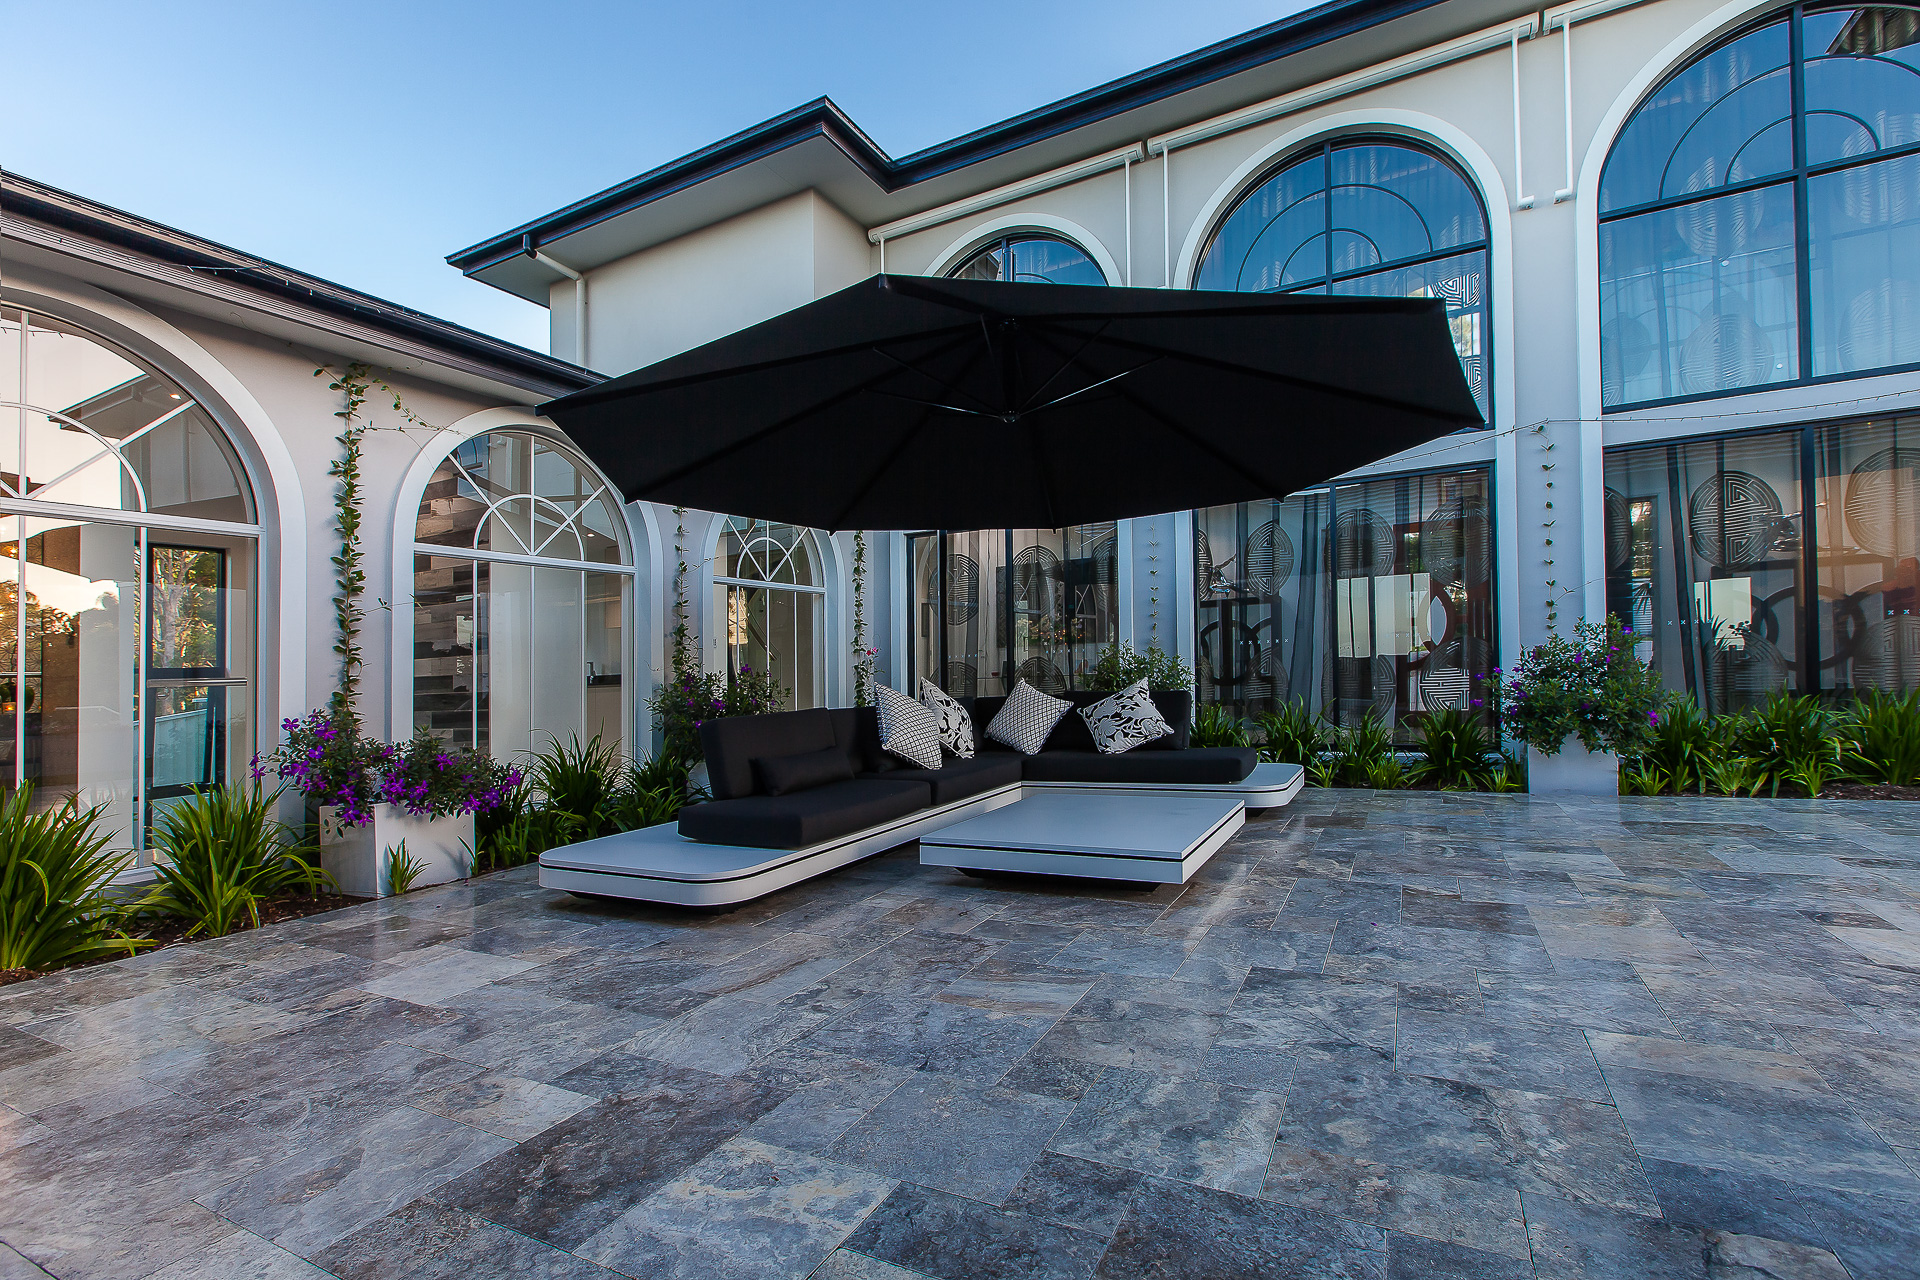 luxury alfresco lounge, outdoor seating, tim christopher design, minka joinery